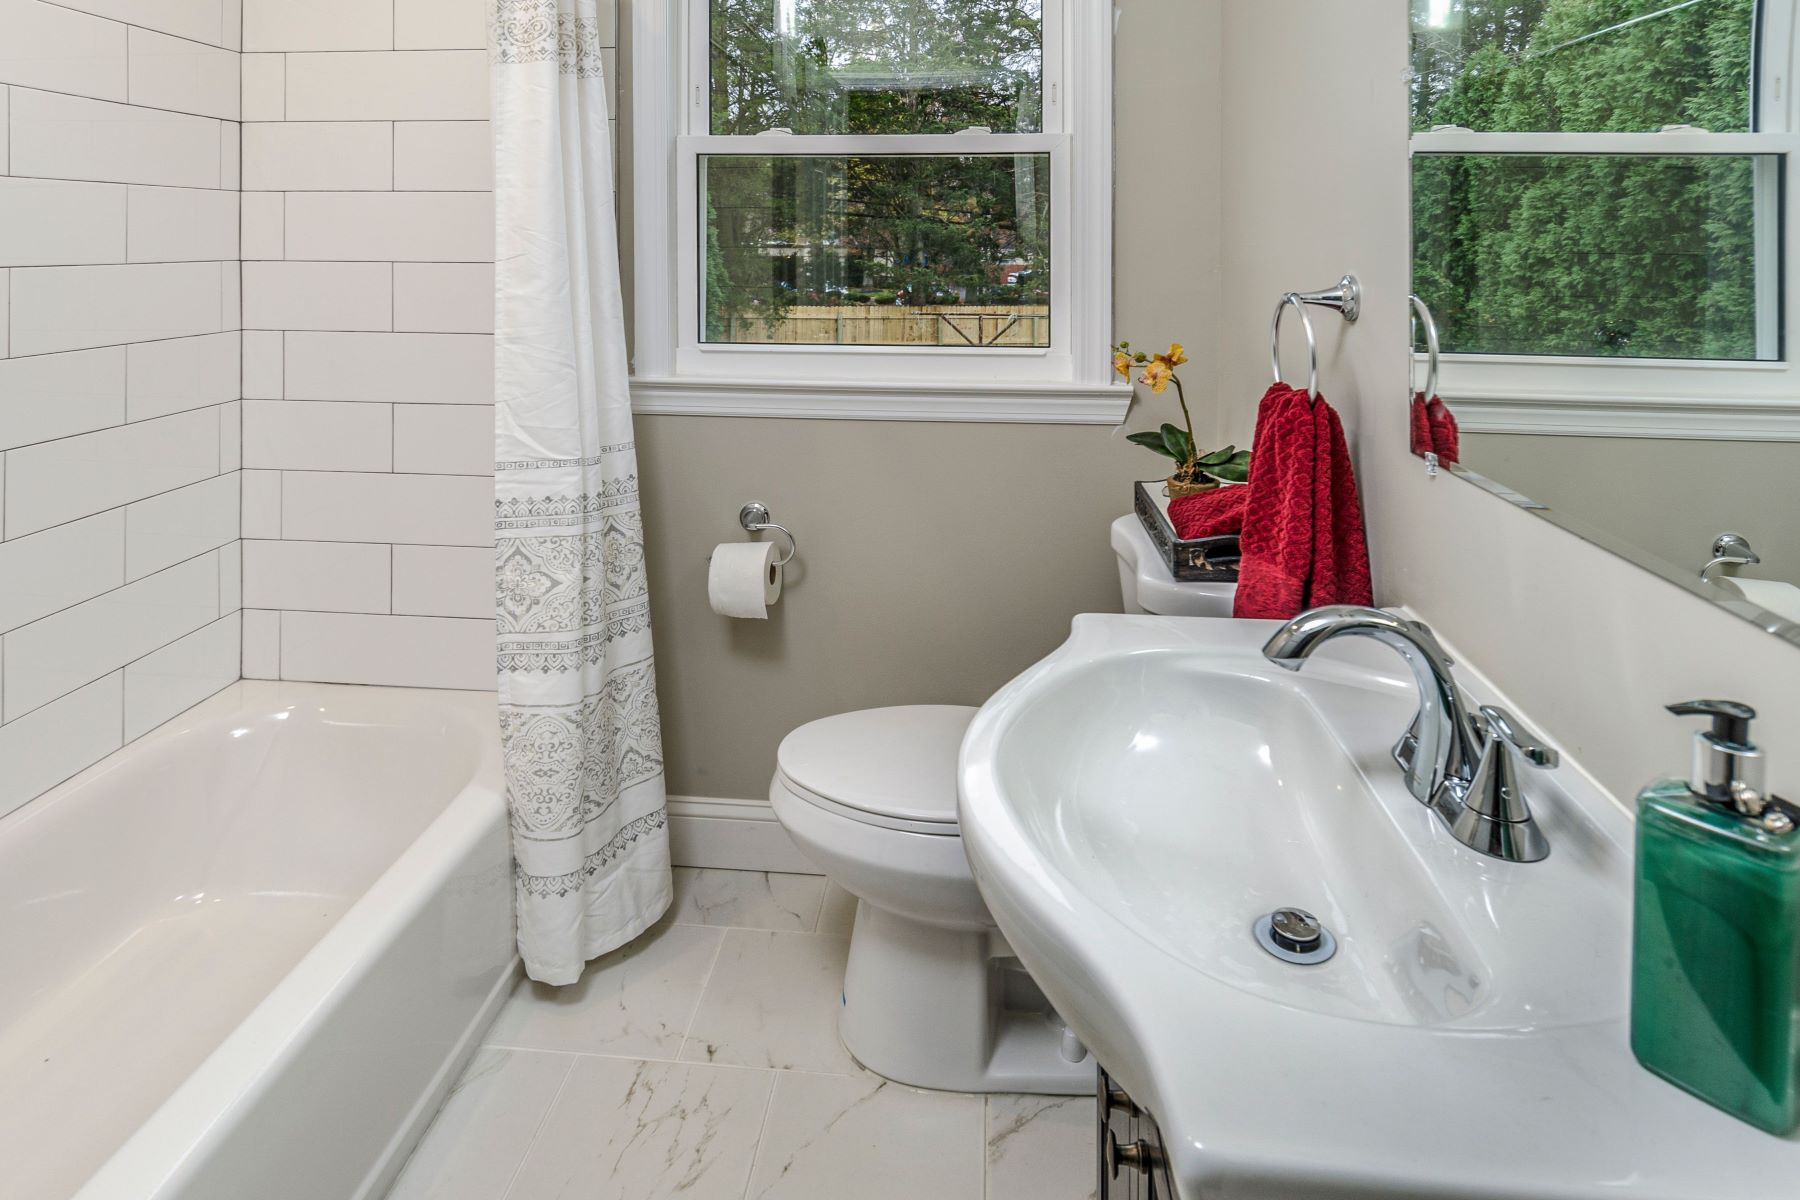 Additional photo for property listing at Re-envisioned Cape Cod with Modern Day Conveniences 104 South Burtis Avenue, Hamilton, New Jersey 08690 États-Unis